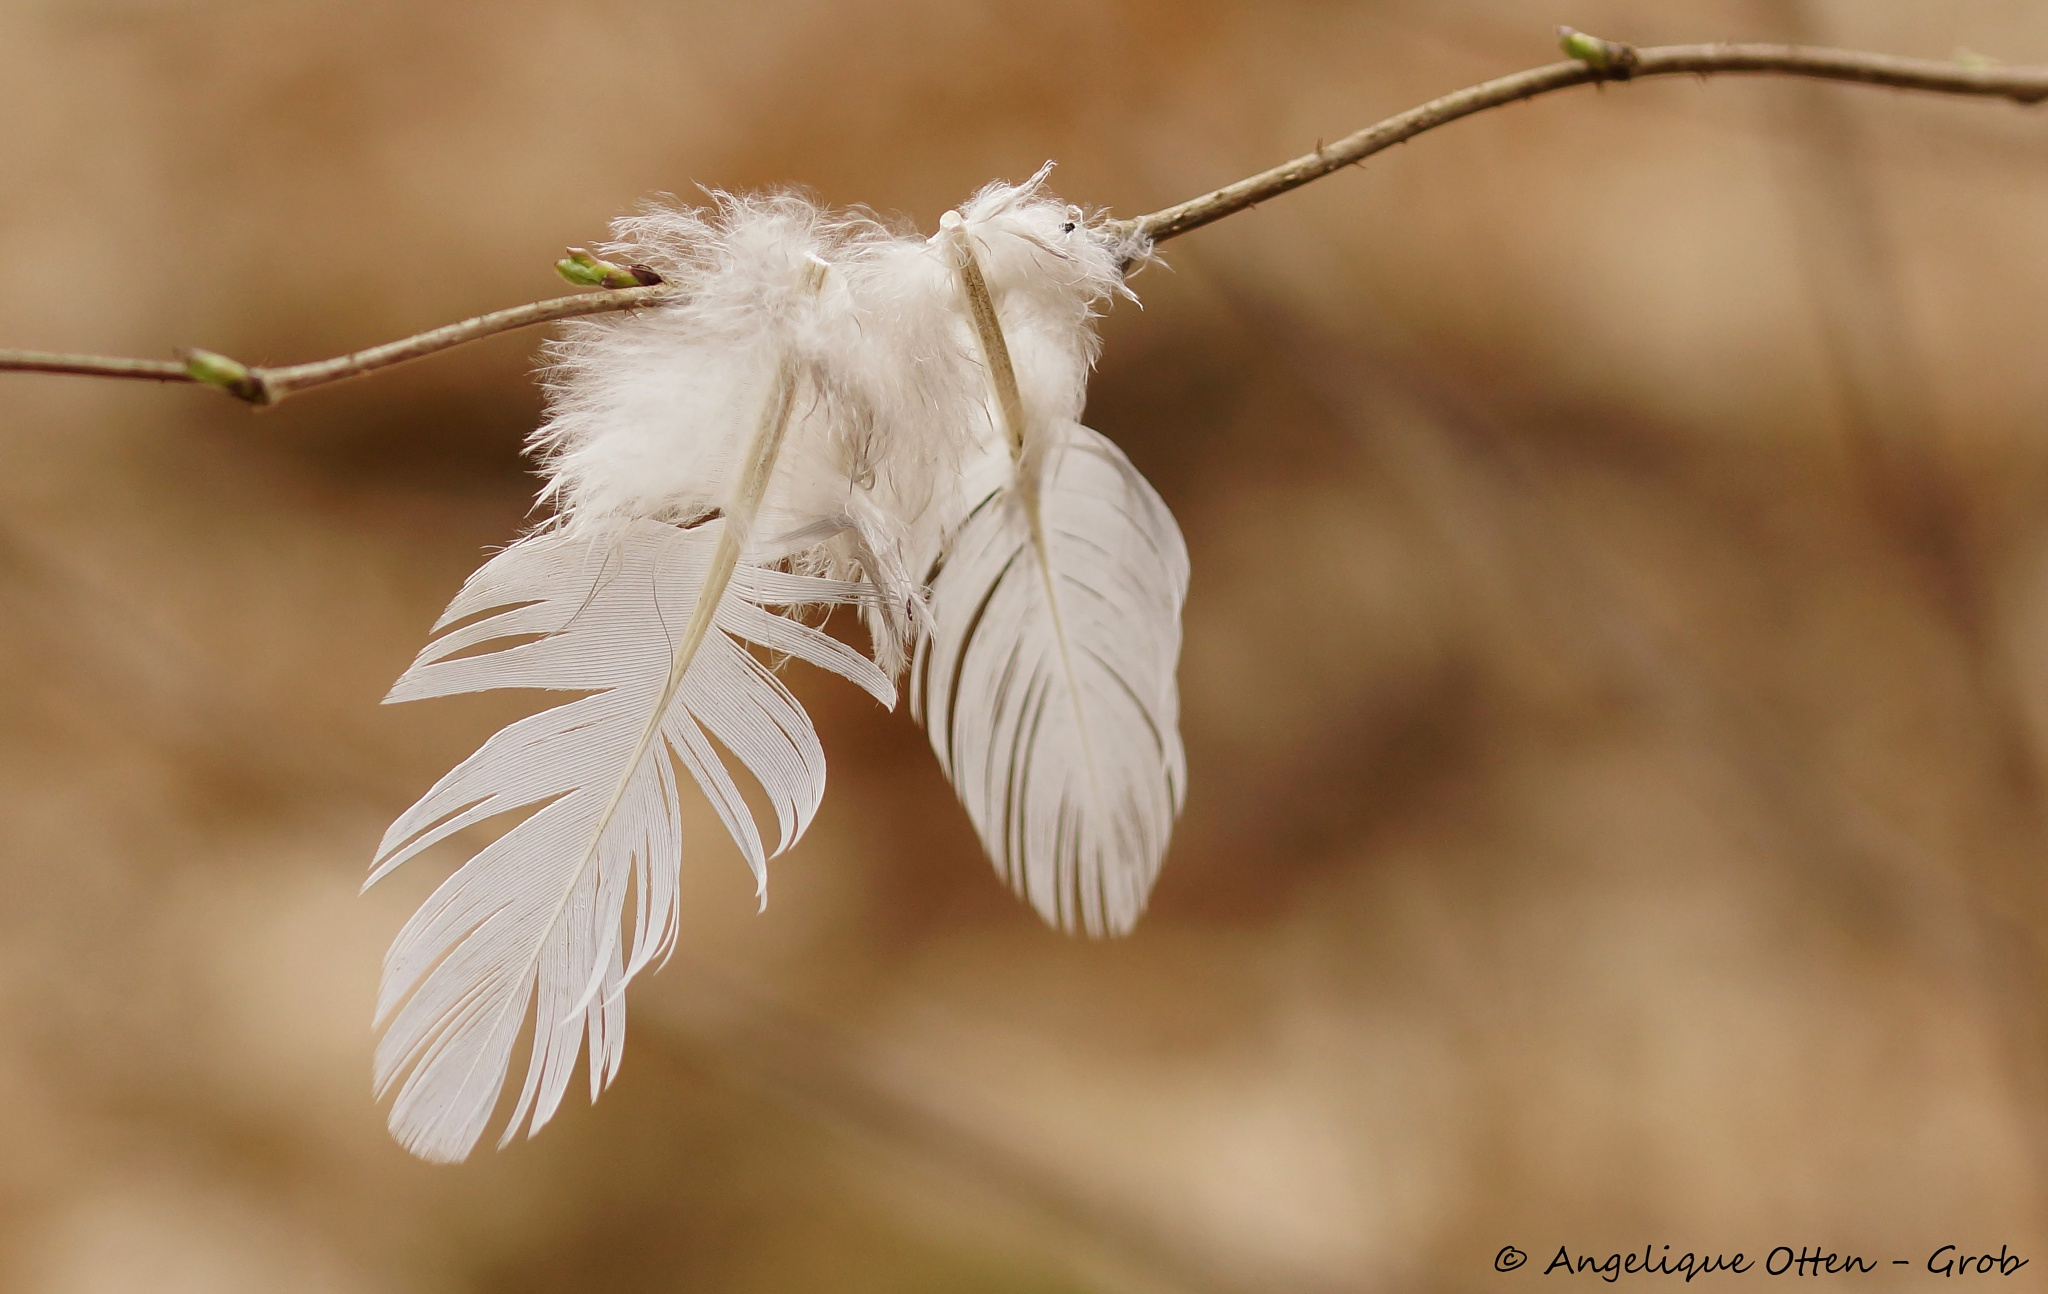 Feathers by Angelique Otten - Grob